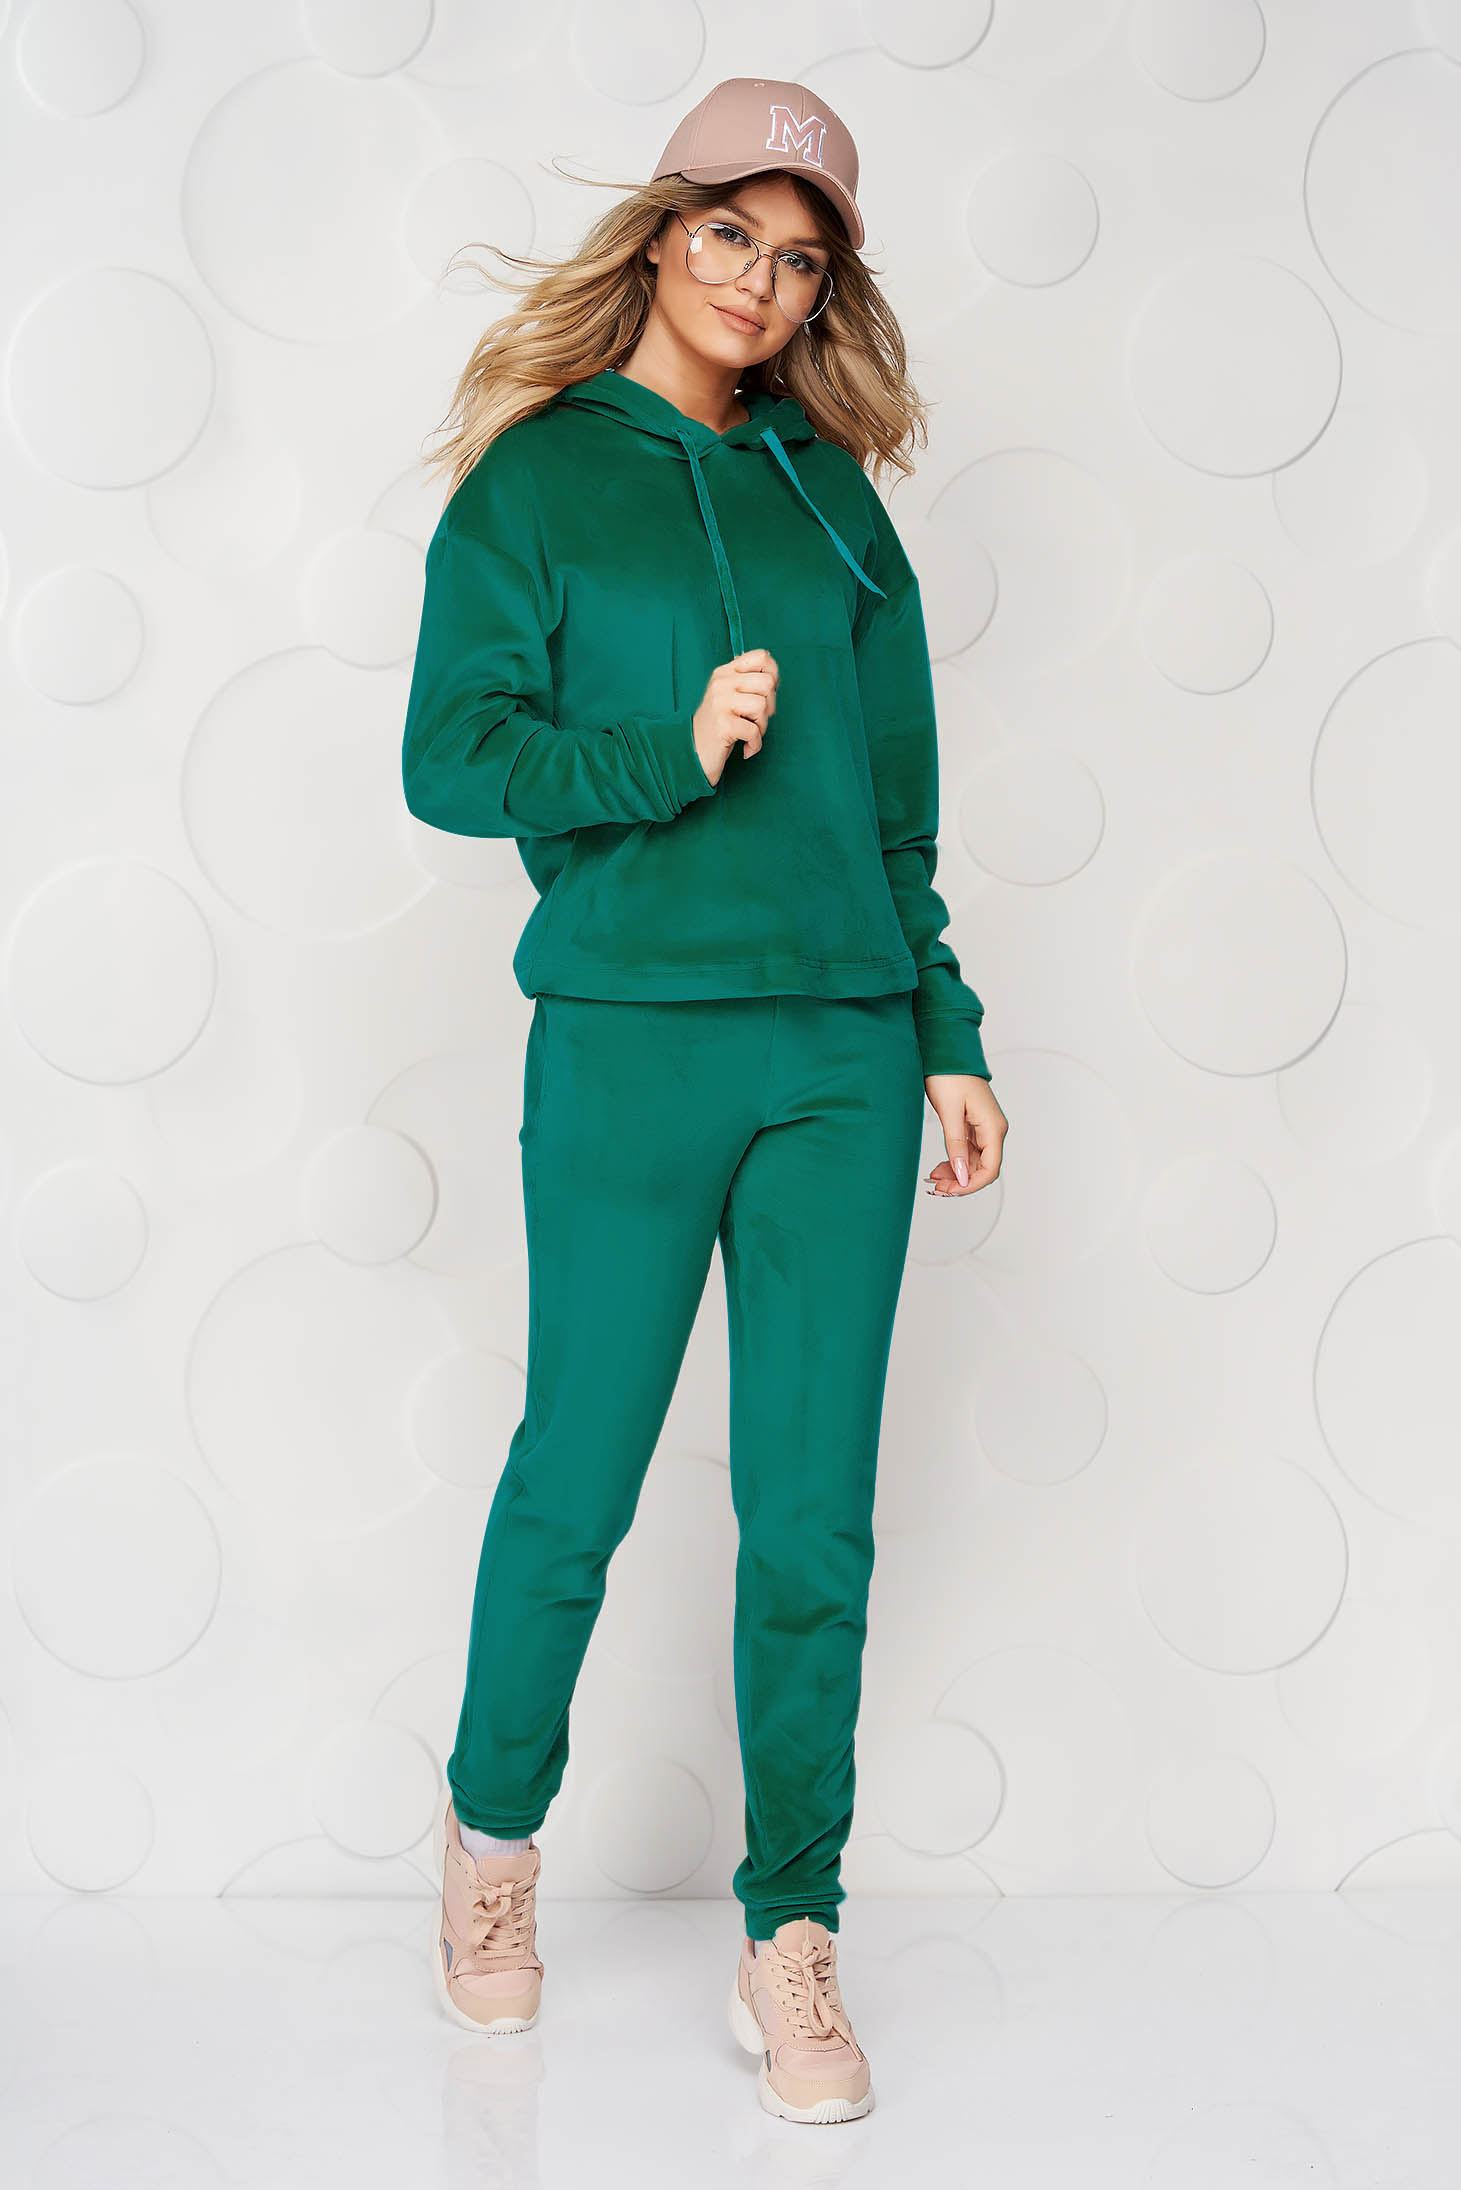 Green casual sport 2 pieces 2 pieces loose fit with undetachable hood